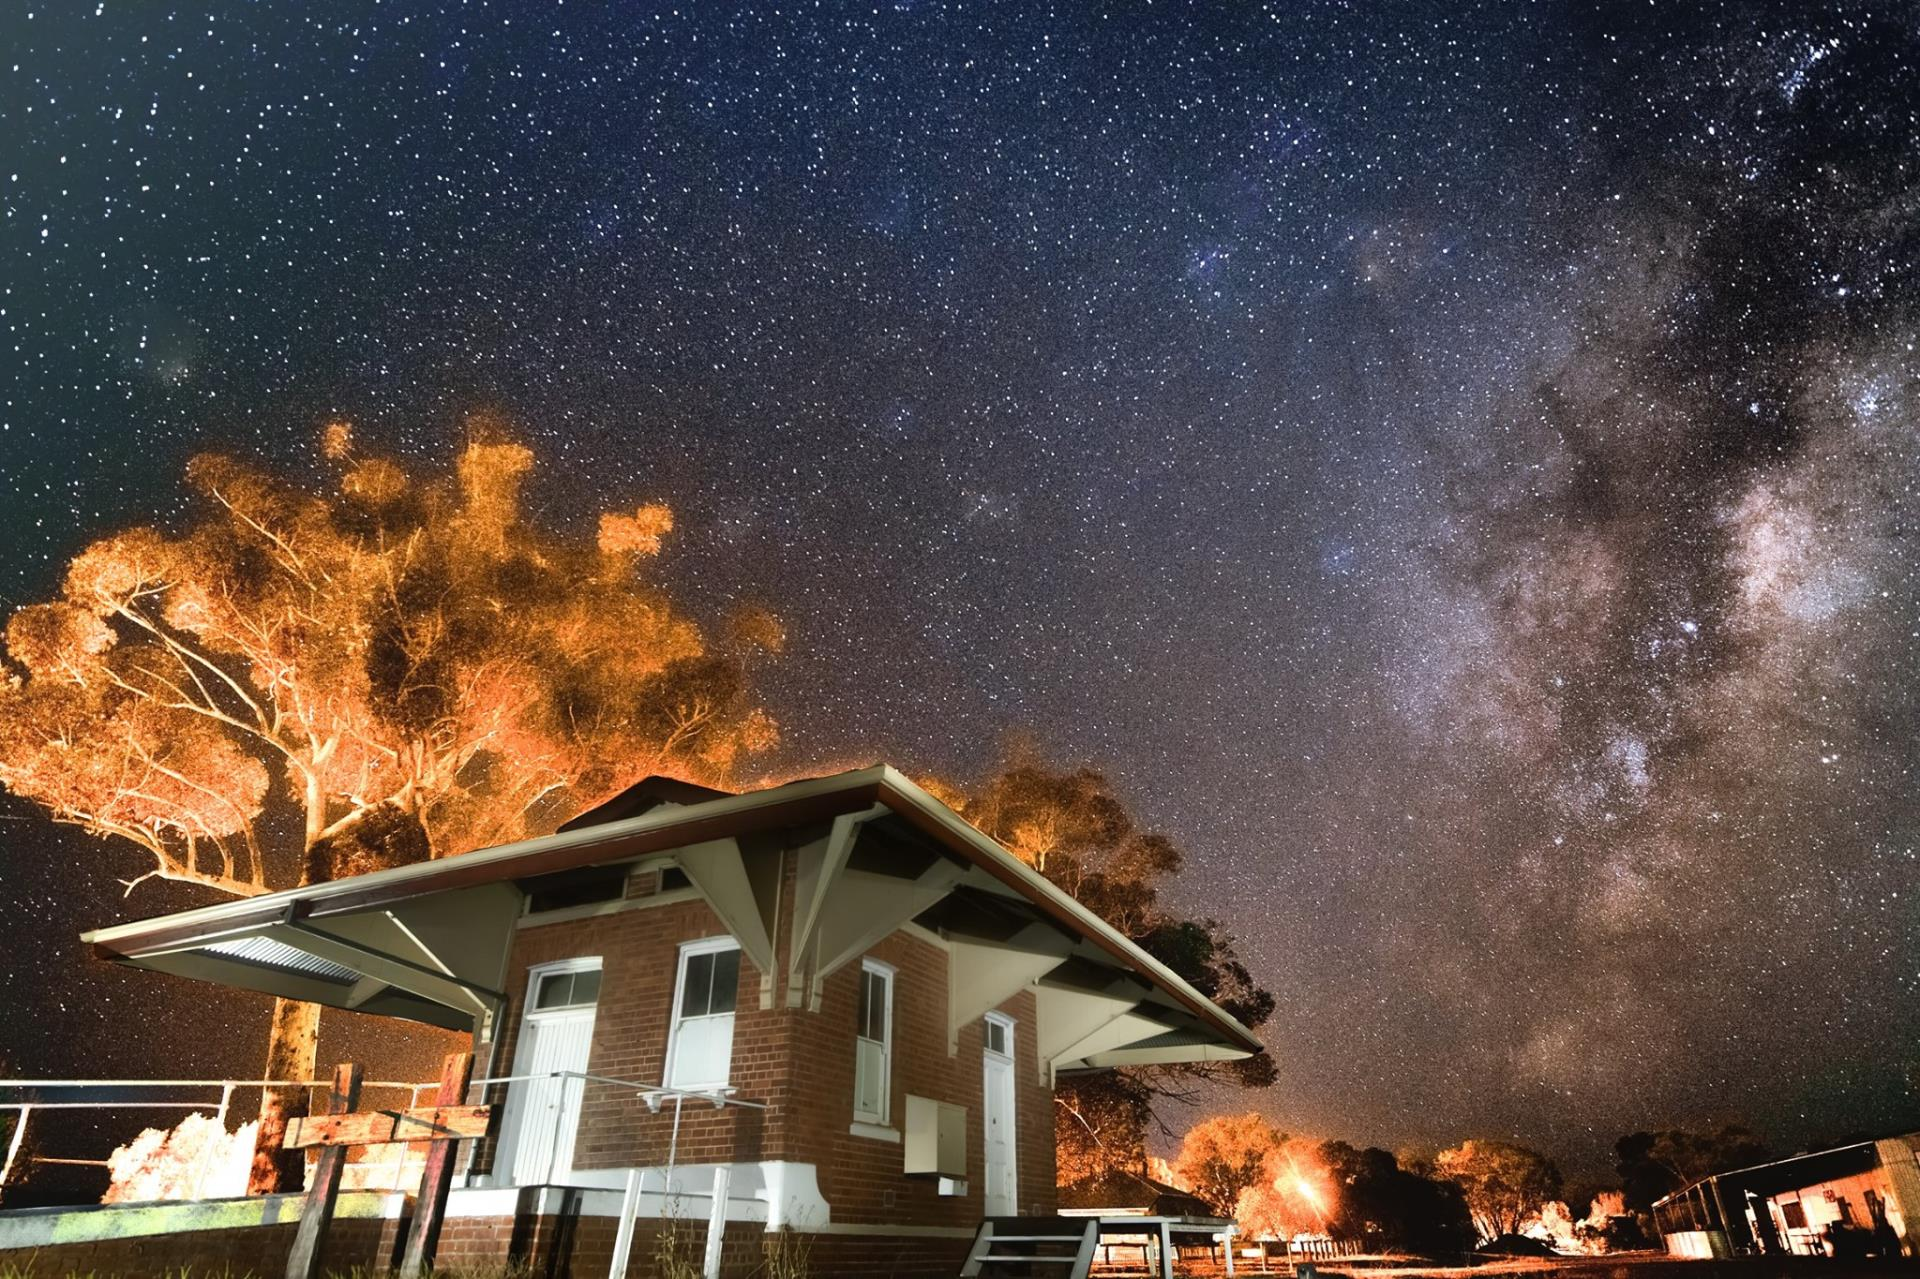 Night Sky from old train station in Darkan